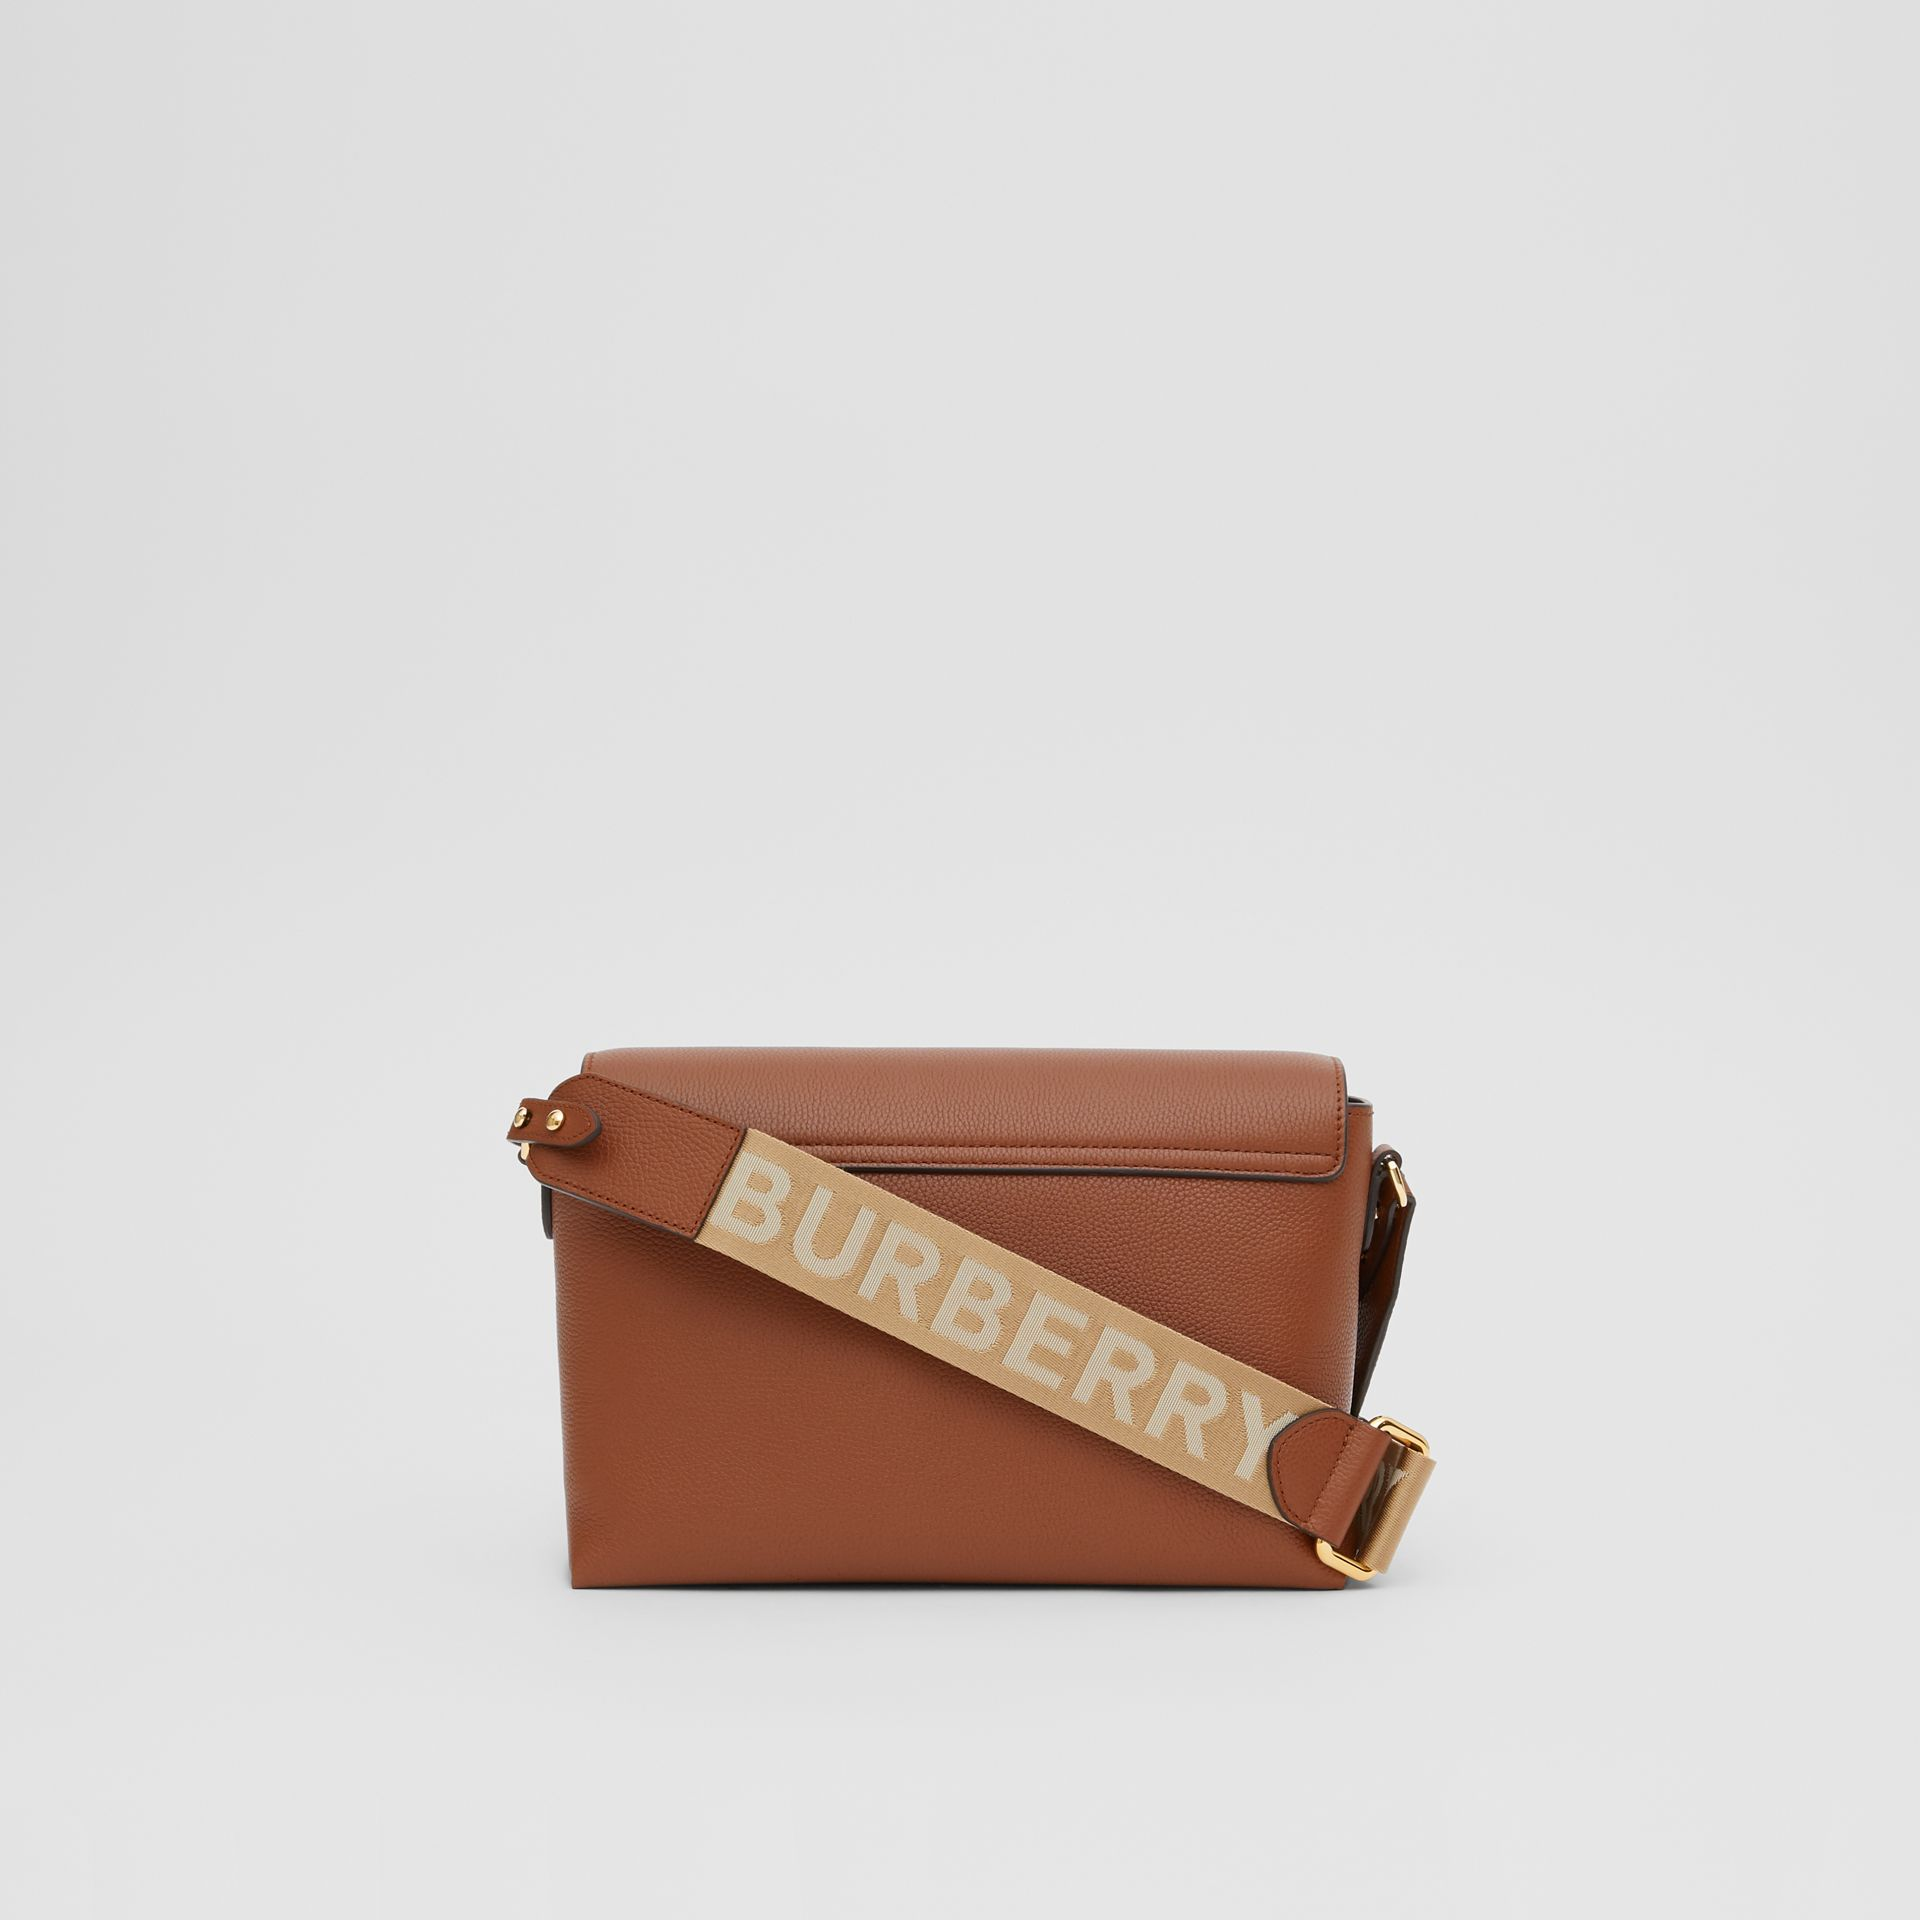 Leather and Vintage Check Note Crossbody Bag in Tan - Women | Burberry United States - gallery image 7